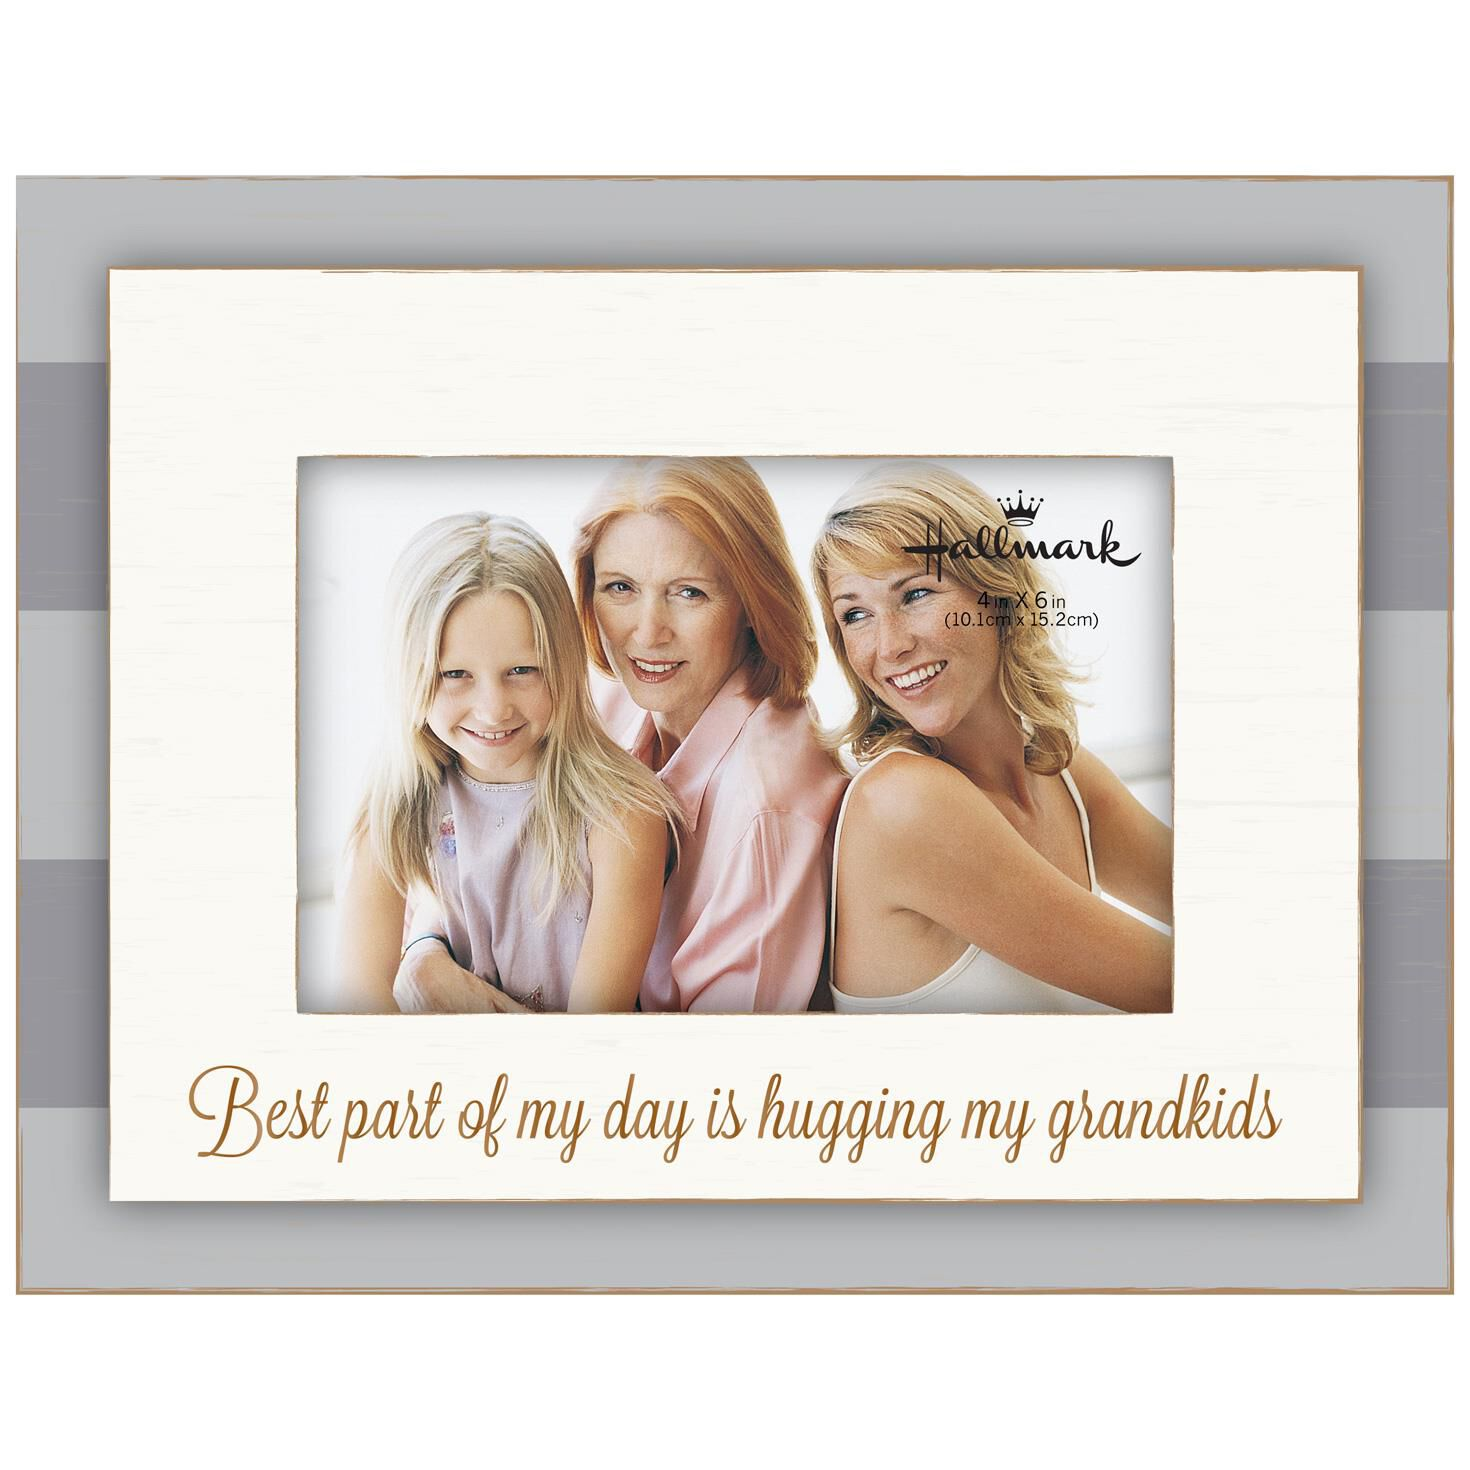 Grandkids Stripe Wood Photo Frame, 4x6 - Picture Frames - Hallmark